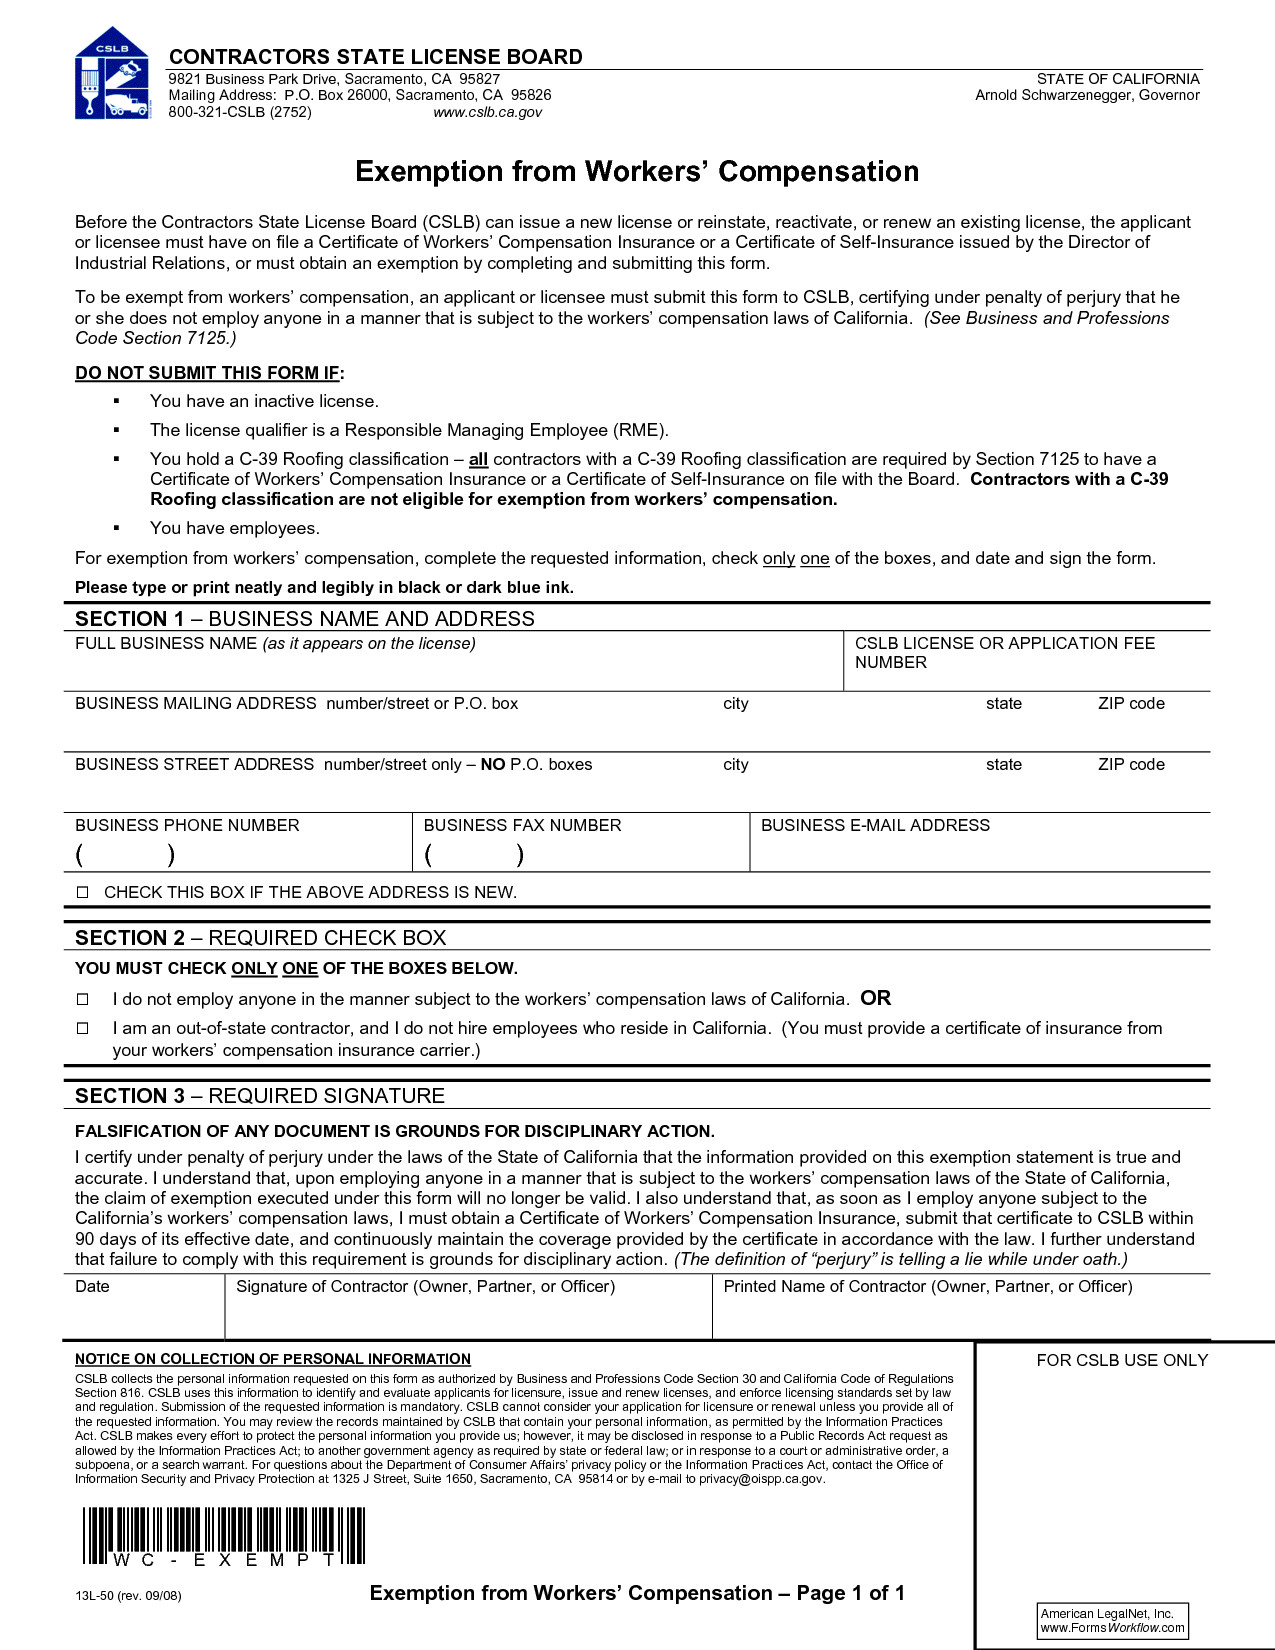 Workers Compensation Waiver form Texas Best S Of California Workers Pensation forms